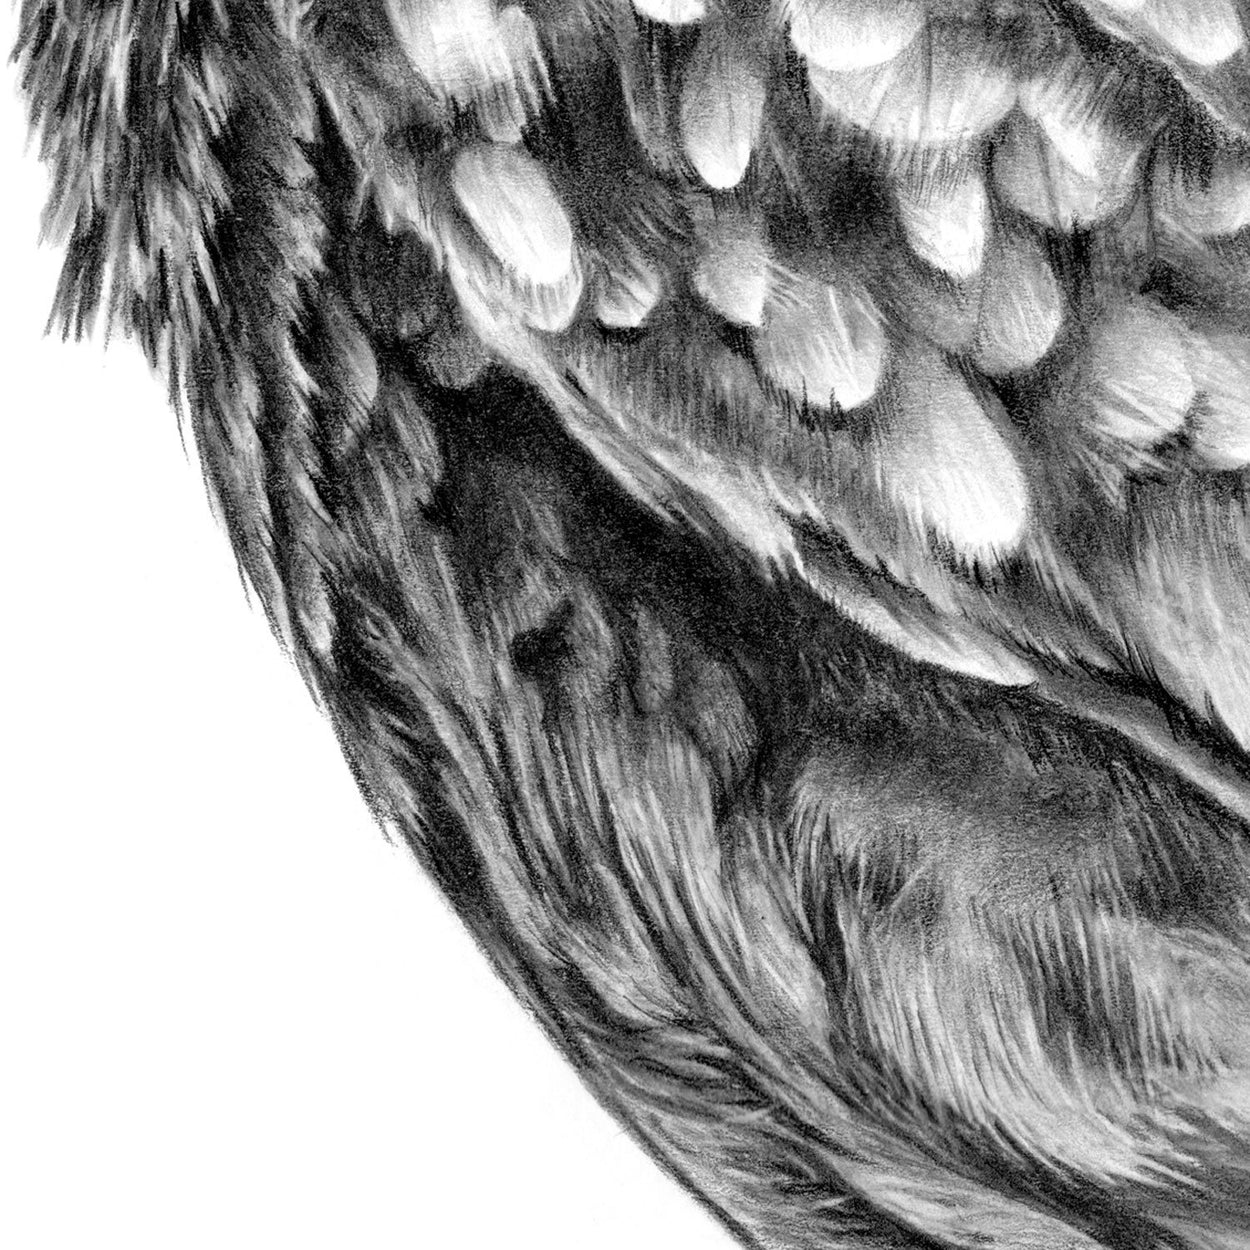 Little Owl Drawing Feathers Close-up - The Thriving Wild